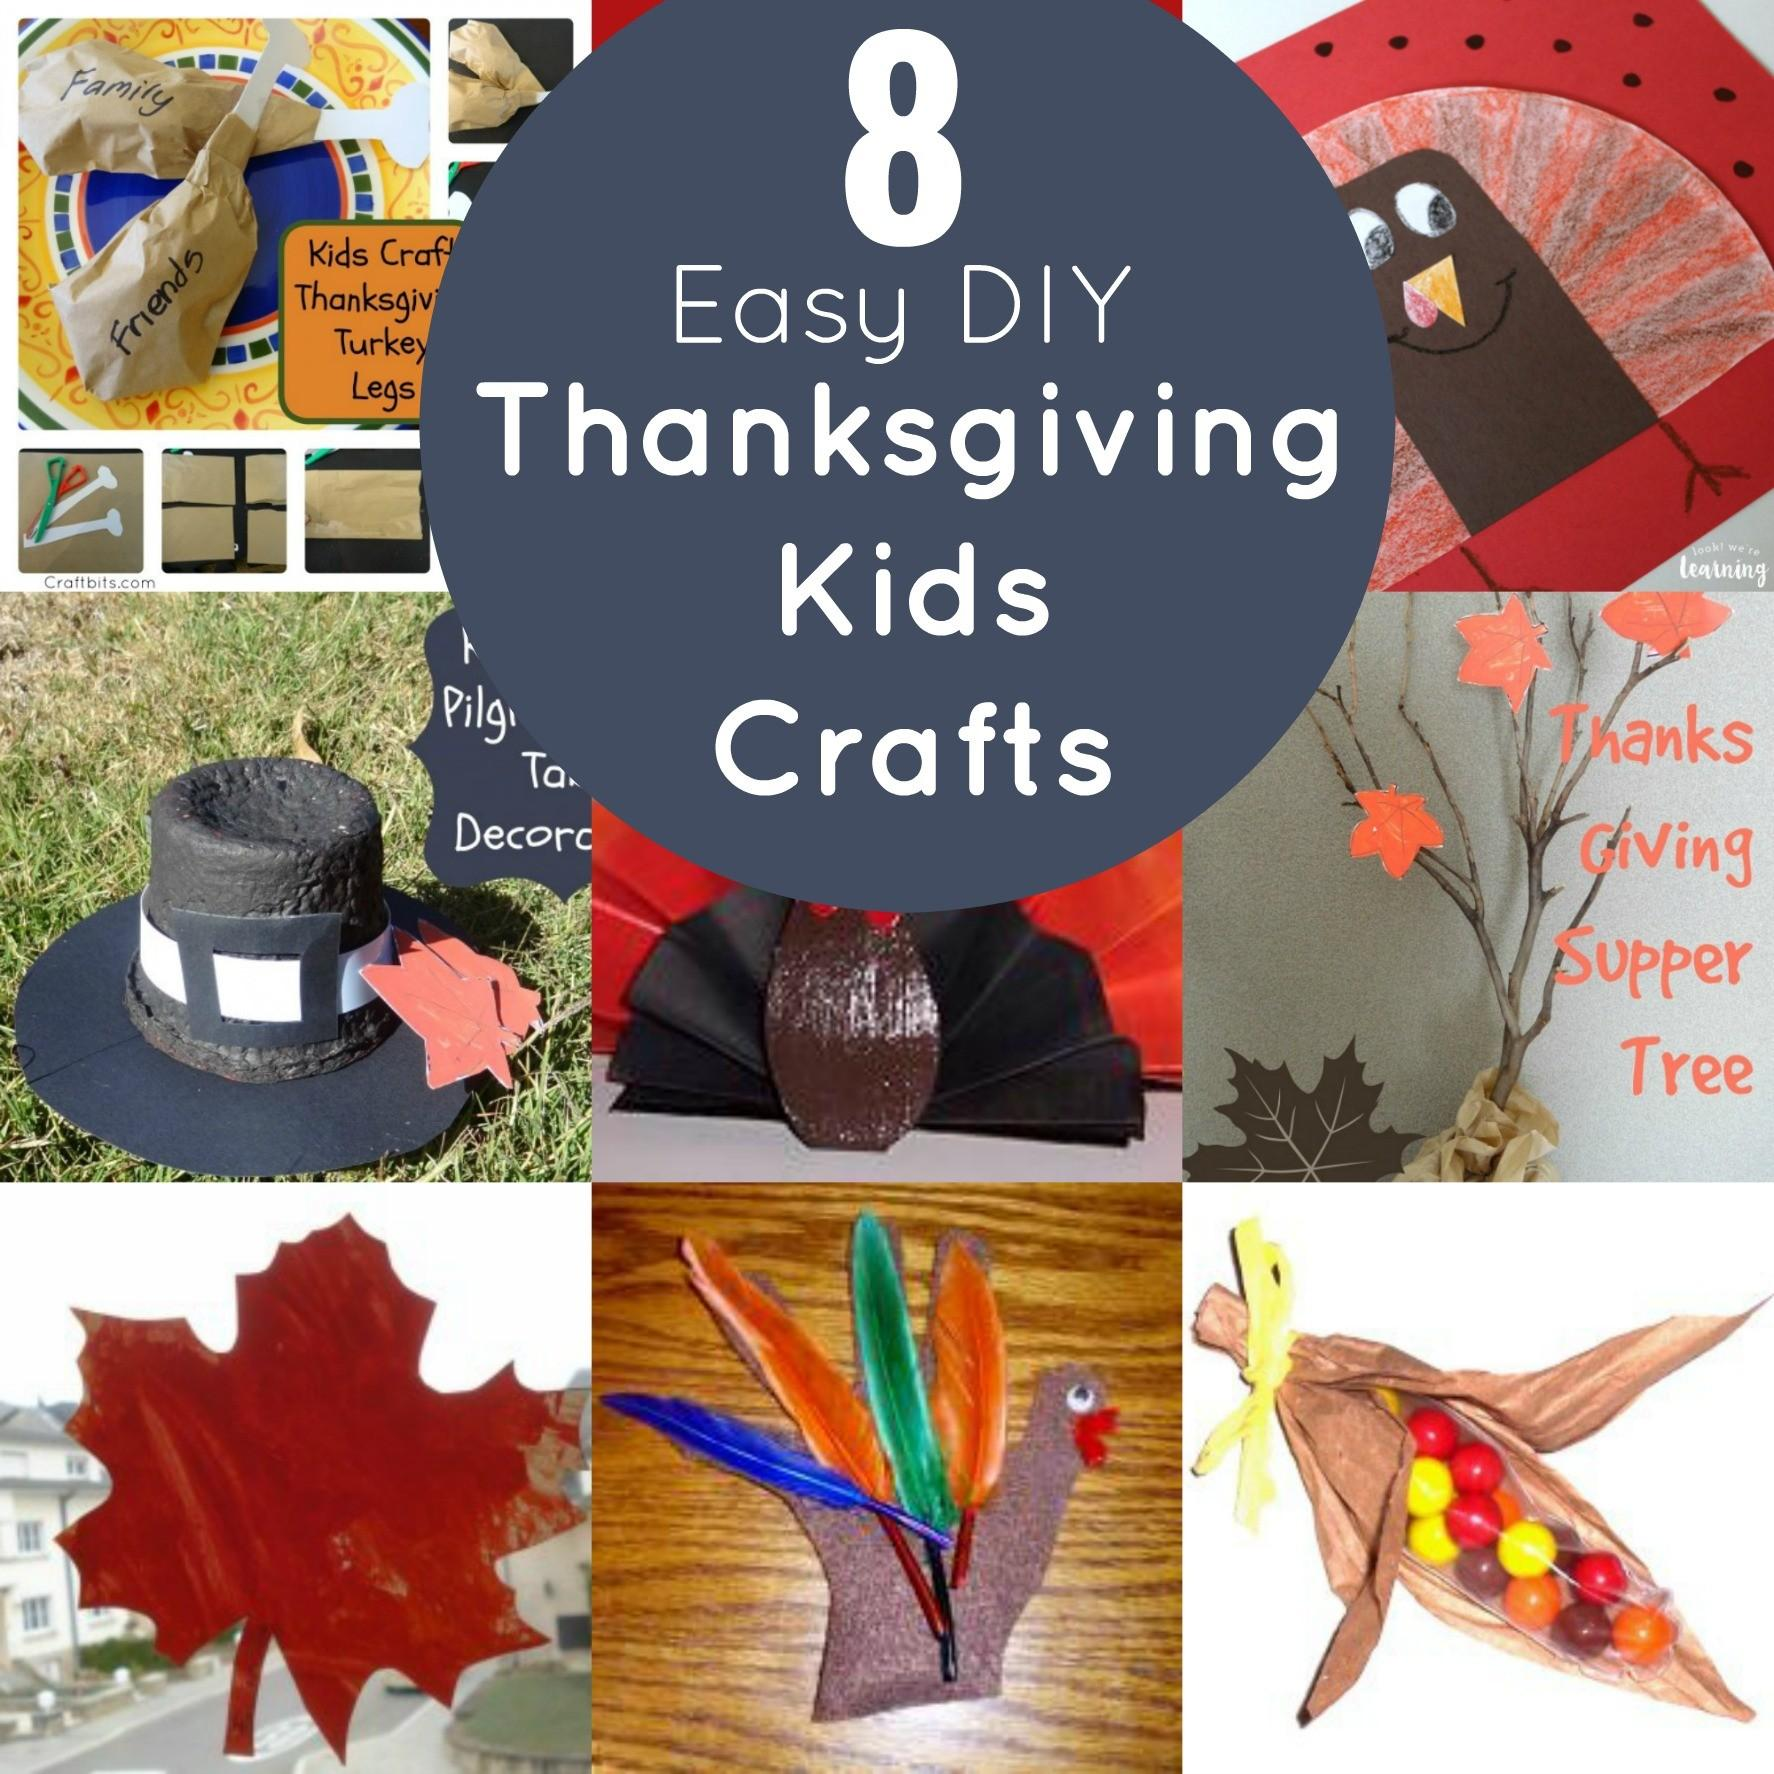 Easy Diy Thanksgiving Kids Crafts Mommies